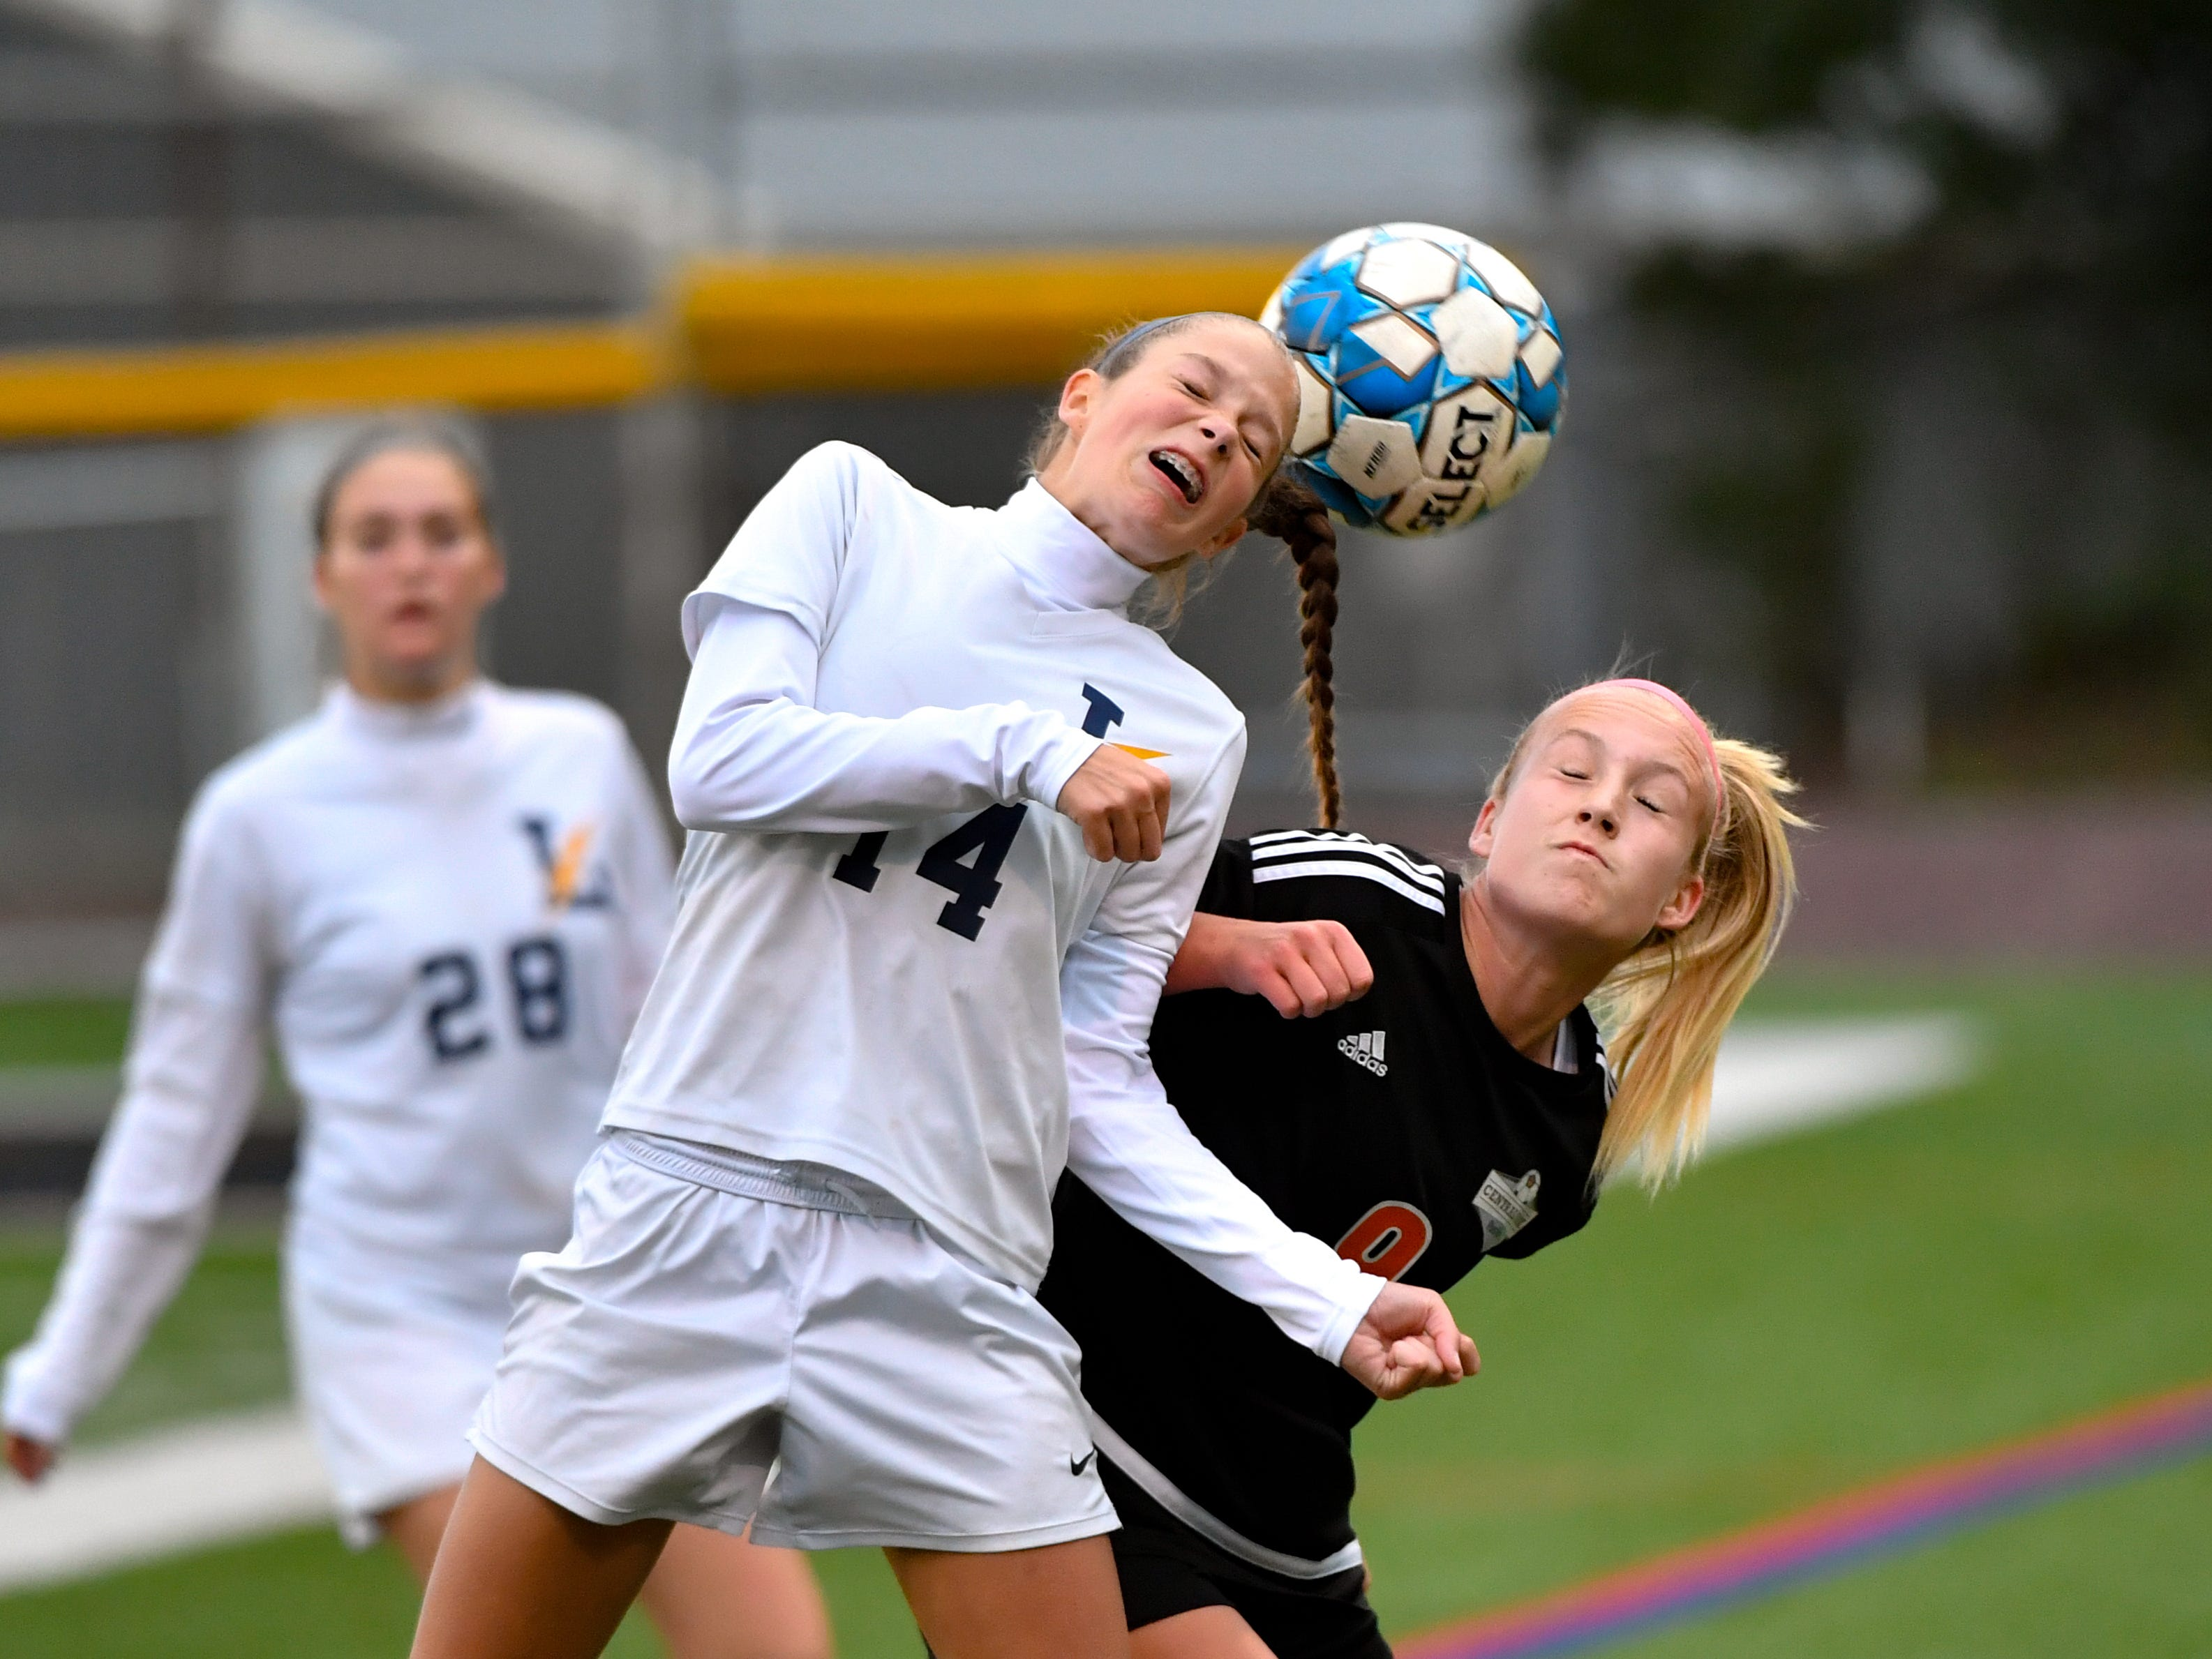 Brayden Ball (14) of Littlestown, left, wins the header over Sydney Koncsol (9), right, of Central York, October 16, 2018. The Panthers beat the Bolts 6-1.